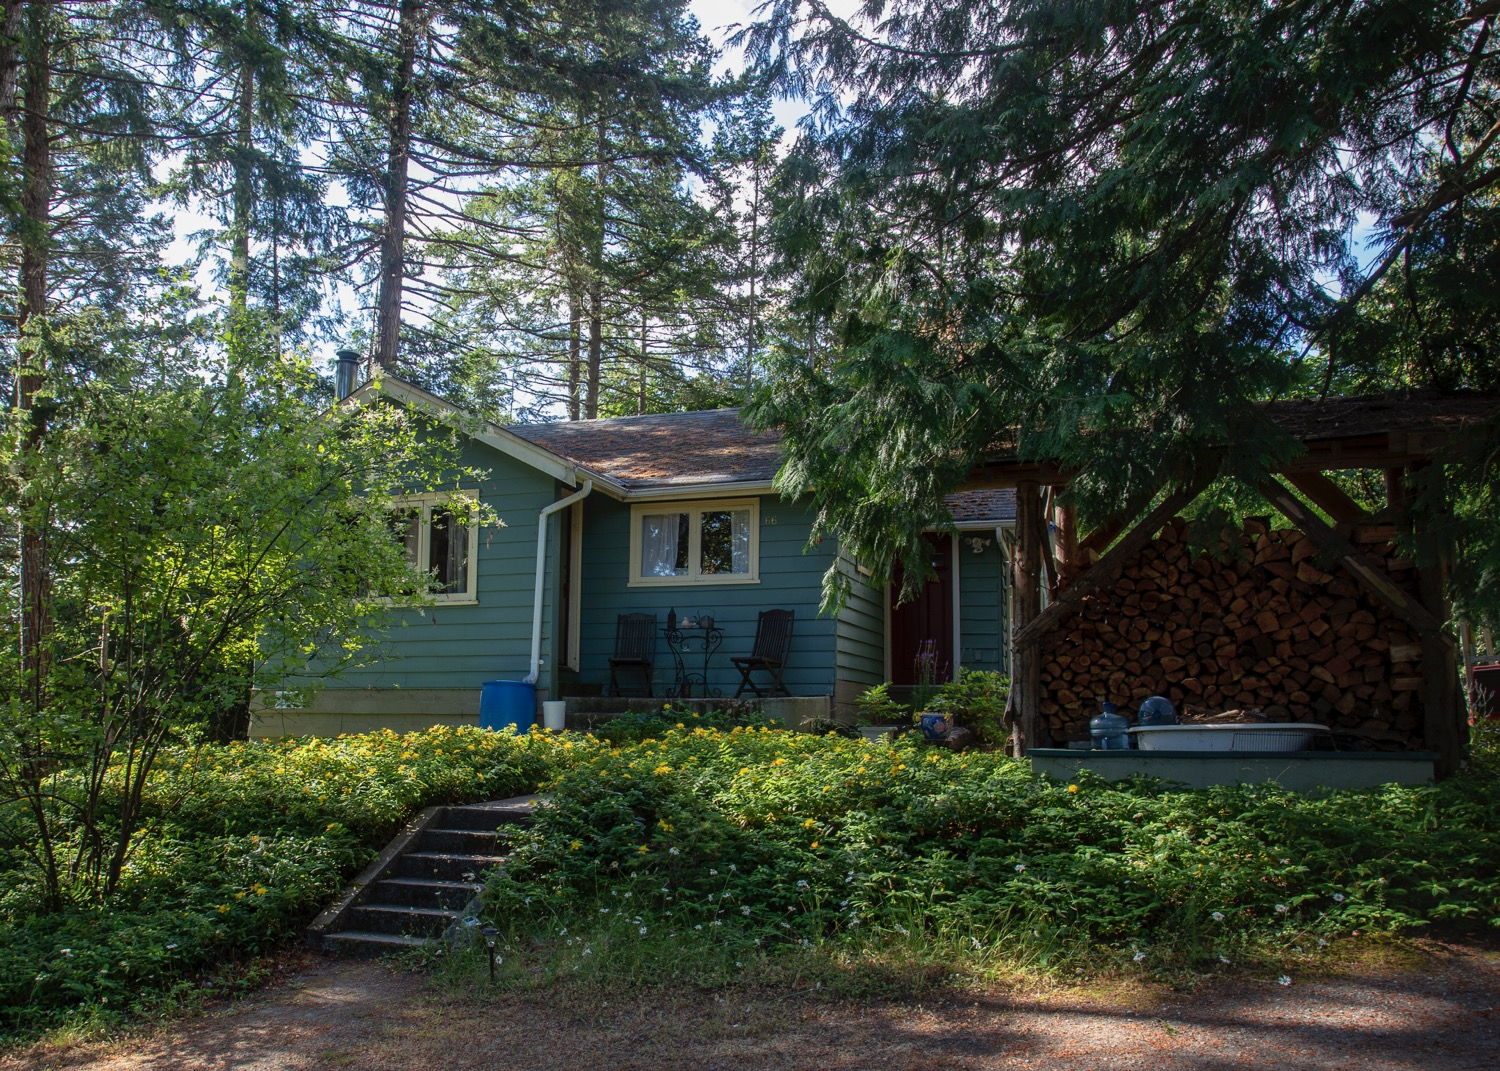 The cottage we spent the weekend at, on Galiano Island.